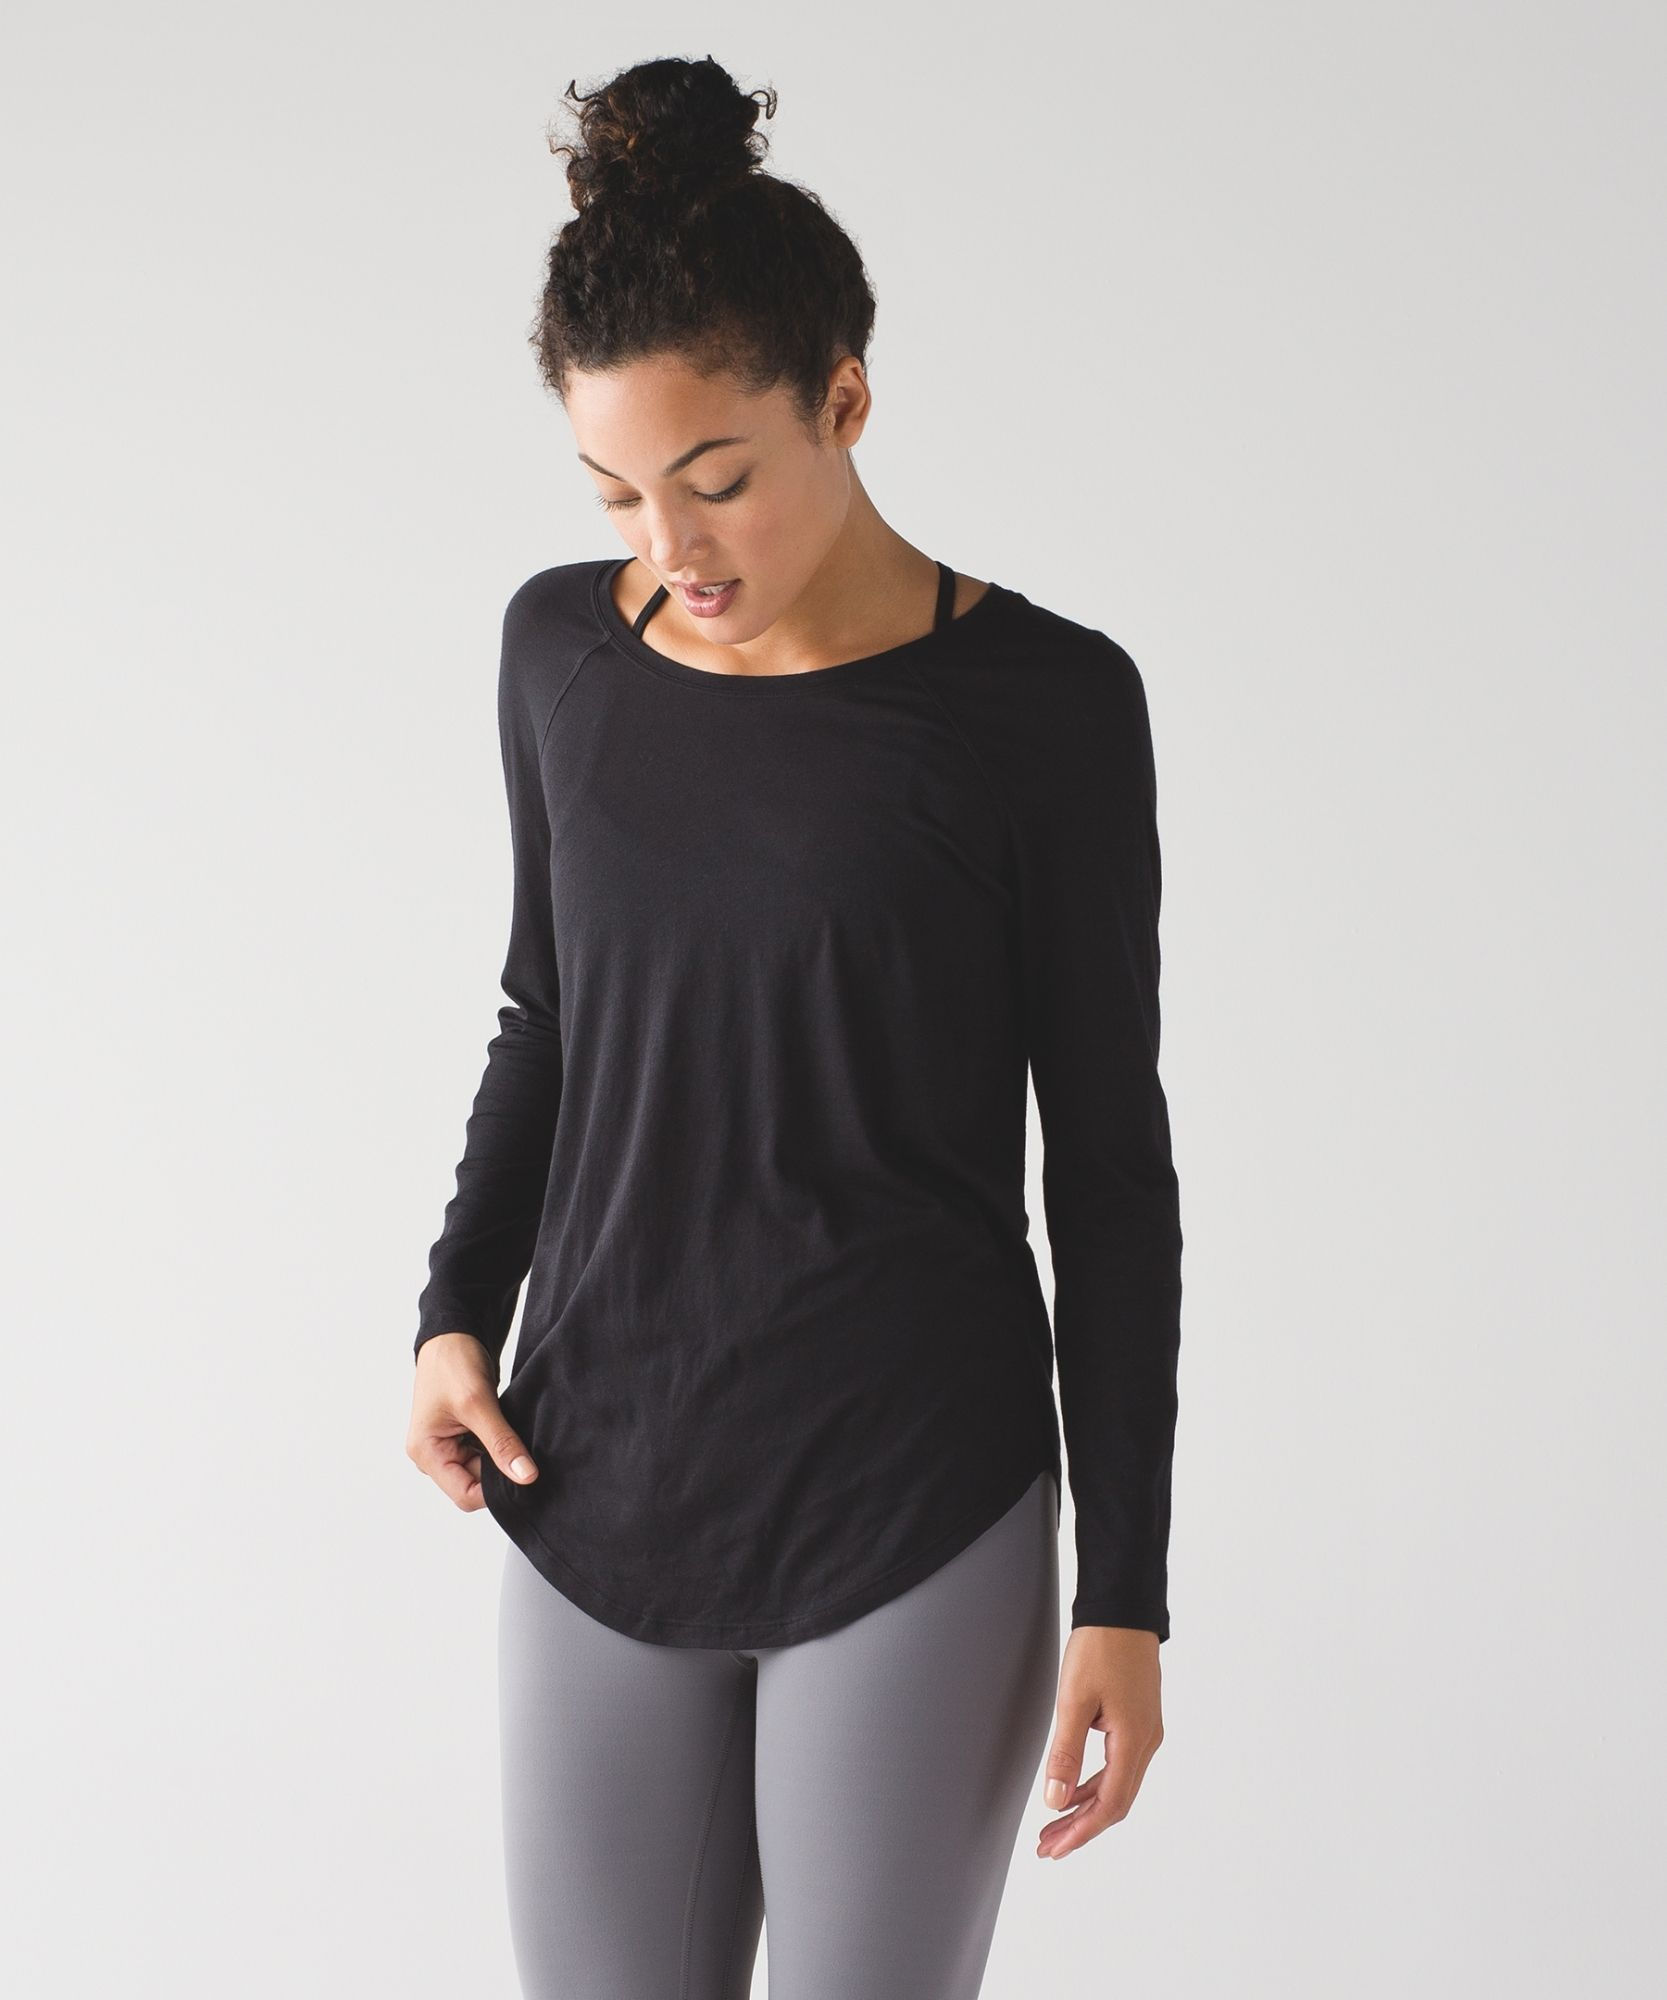 3759fa9901808 Locarno Long Sleeve | Women's Long Sleeves | lululemon athletica - Sale! Up  to 75% OFF! Shop at Stylizio for women's and men's designer handbags, ...